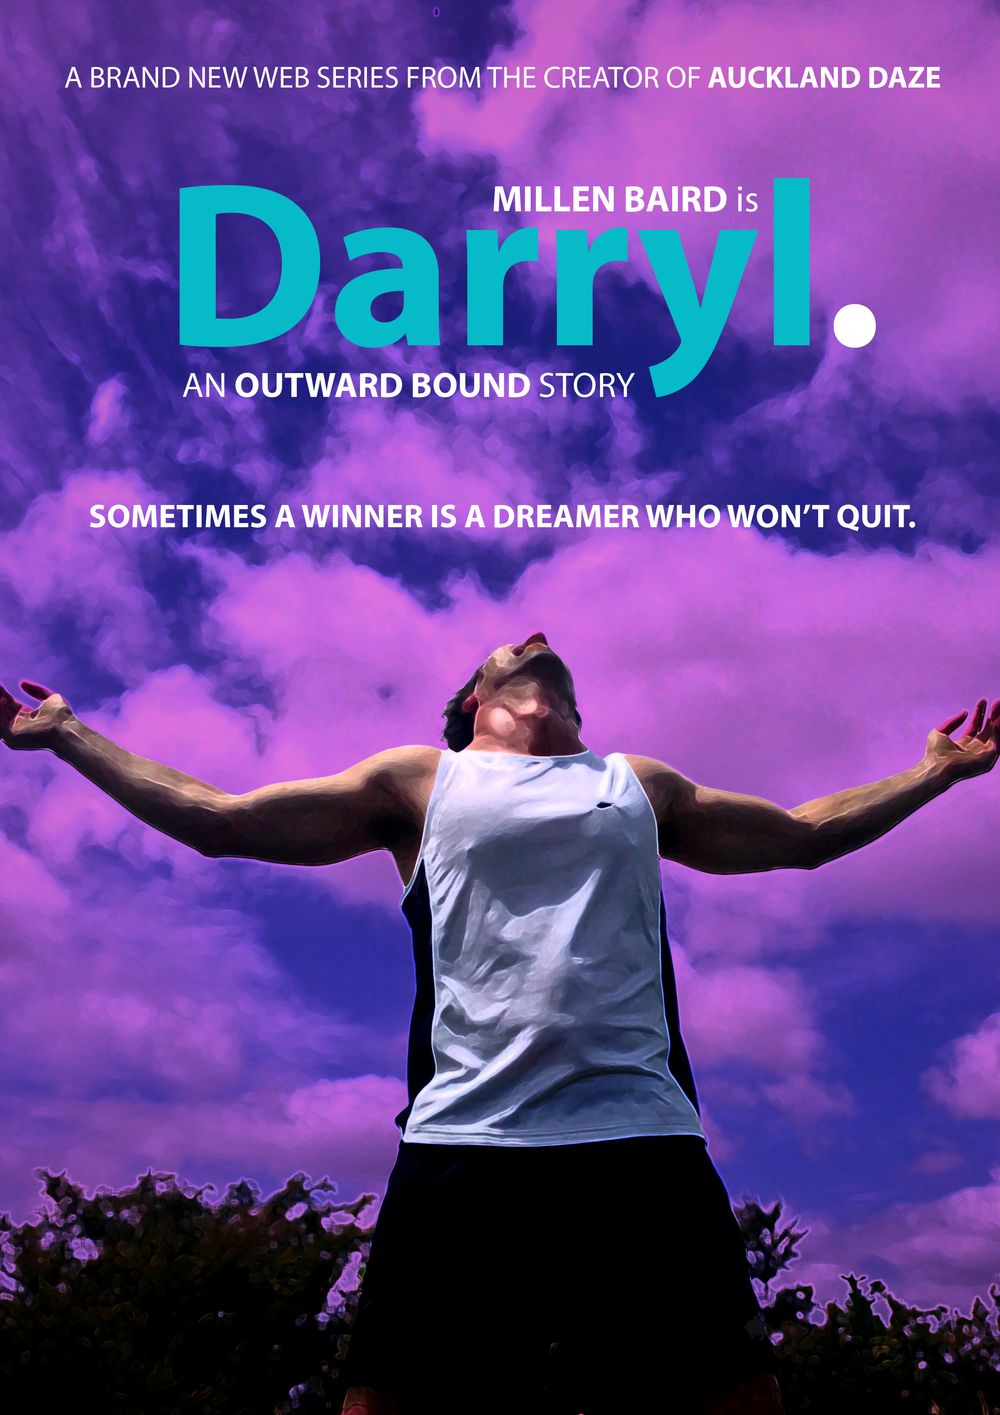 Darryl. An Outward Bound Story. Millen Baird writes and stars in this brand new web series filmed on location at the Outward Bound course in Anakiwa.